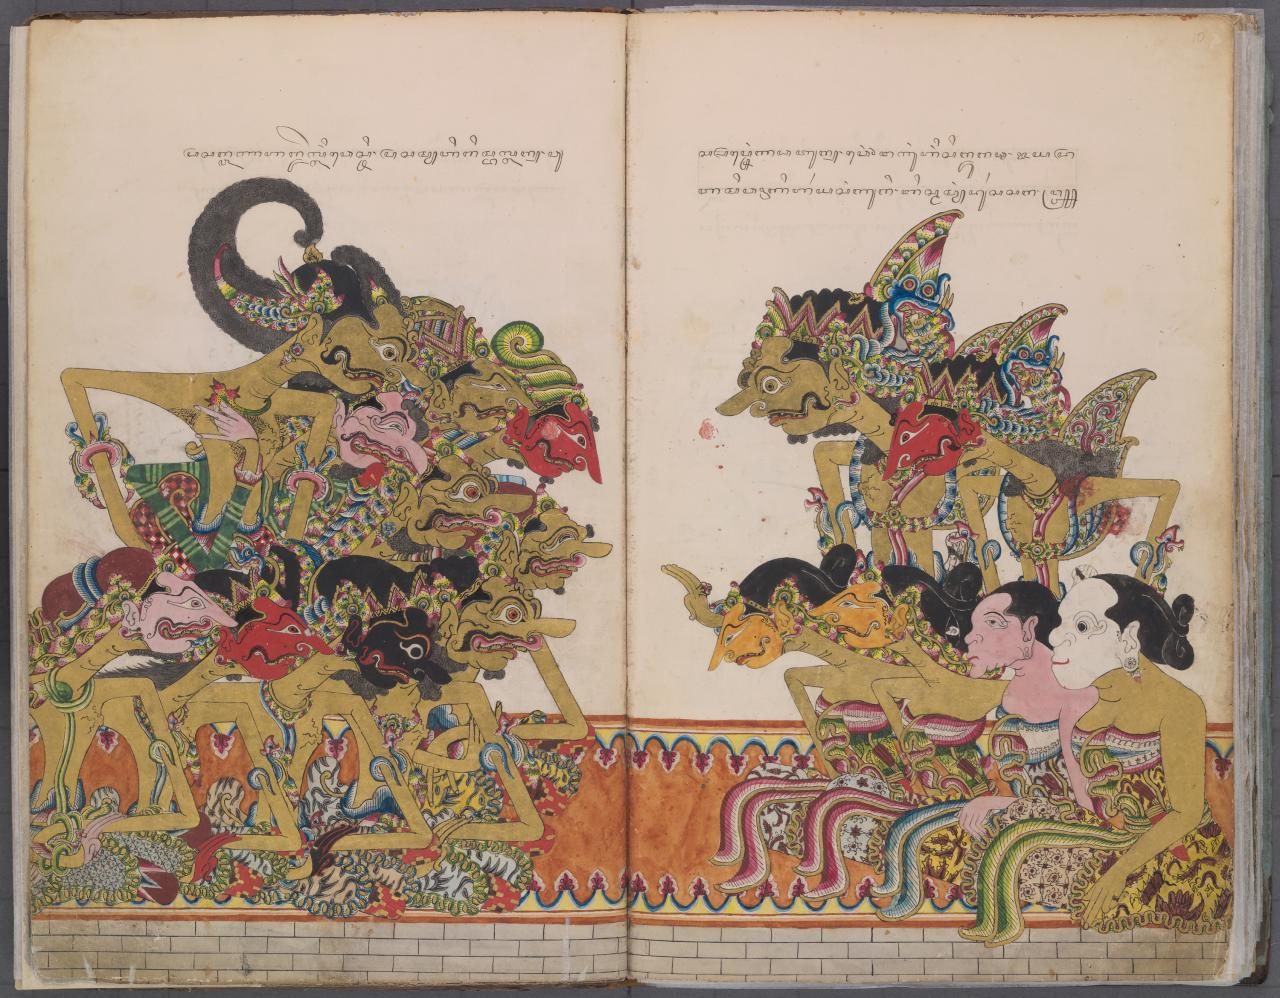 INDONESIAN Illustrated manuscript of Serat Dewa Ruci 1886